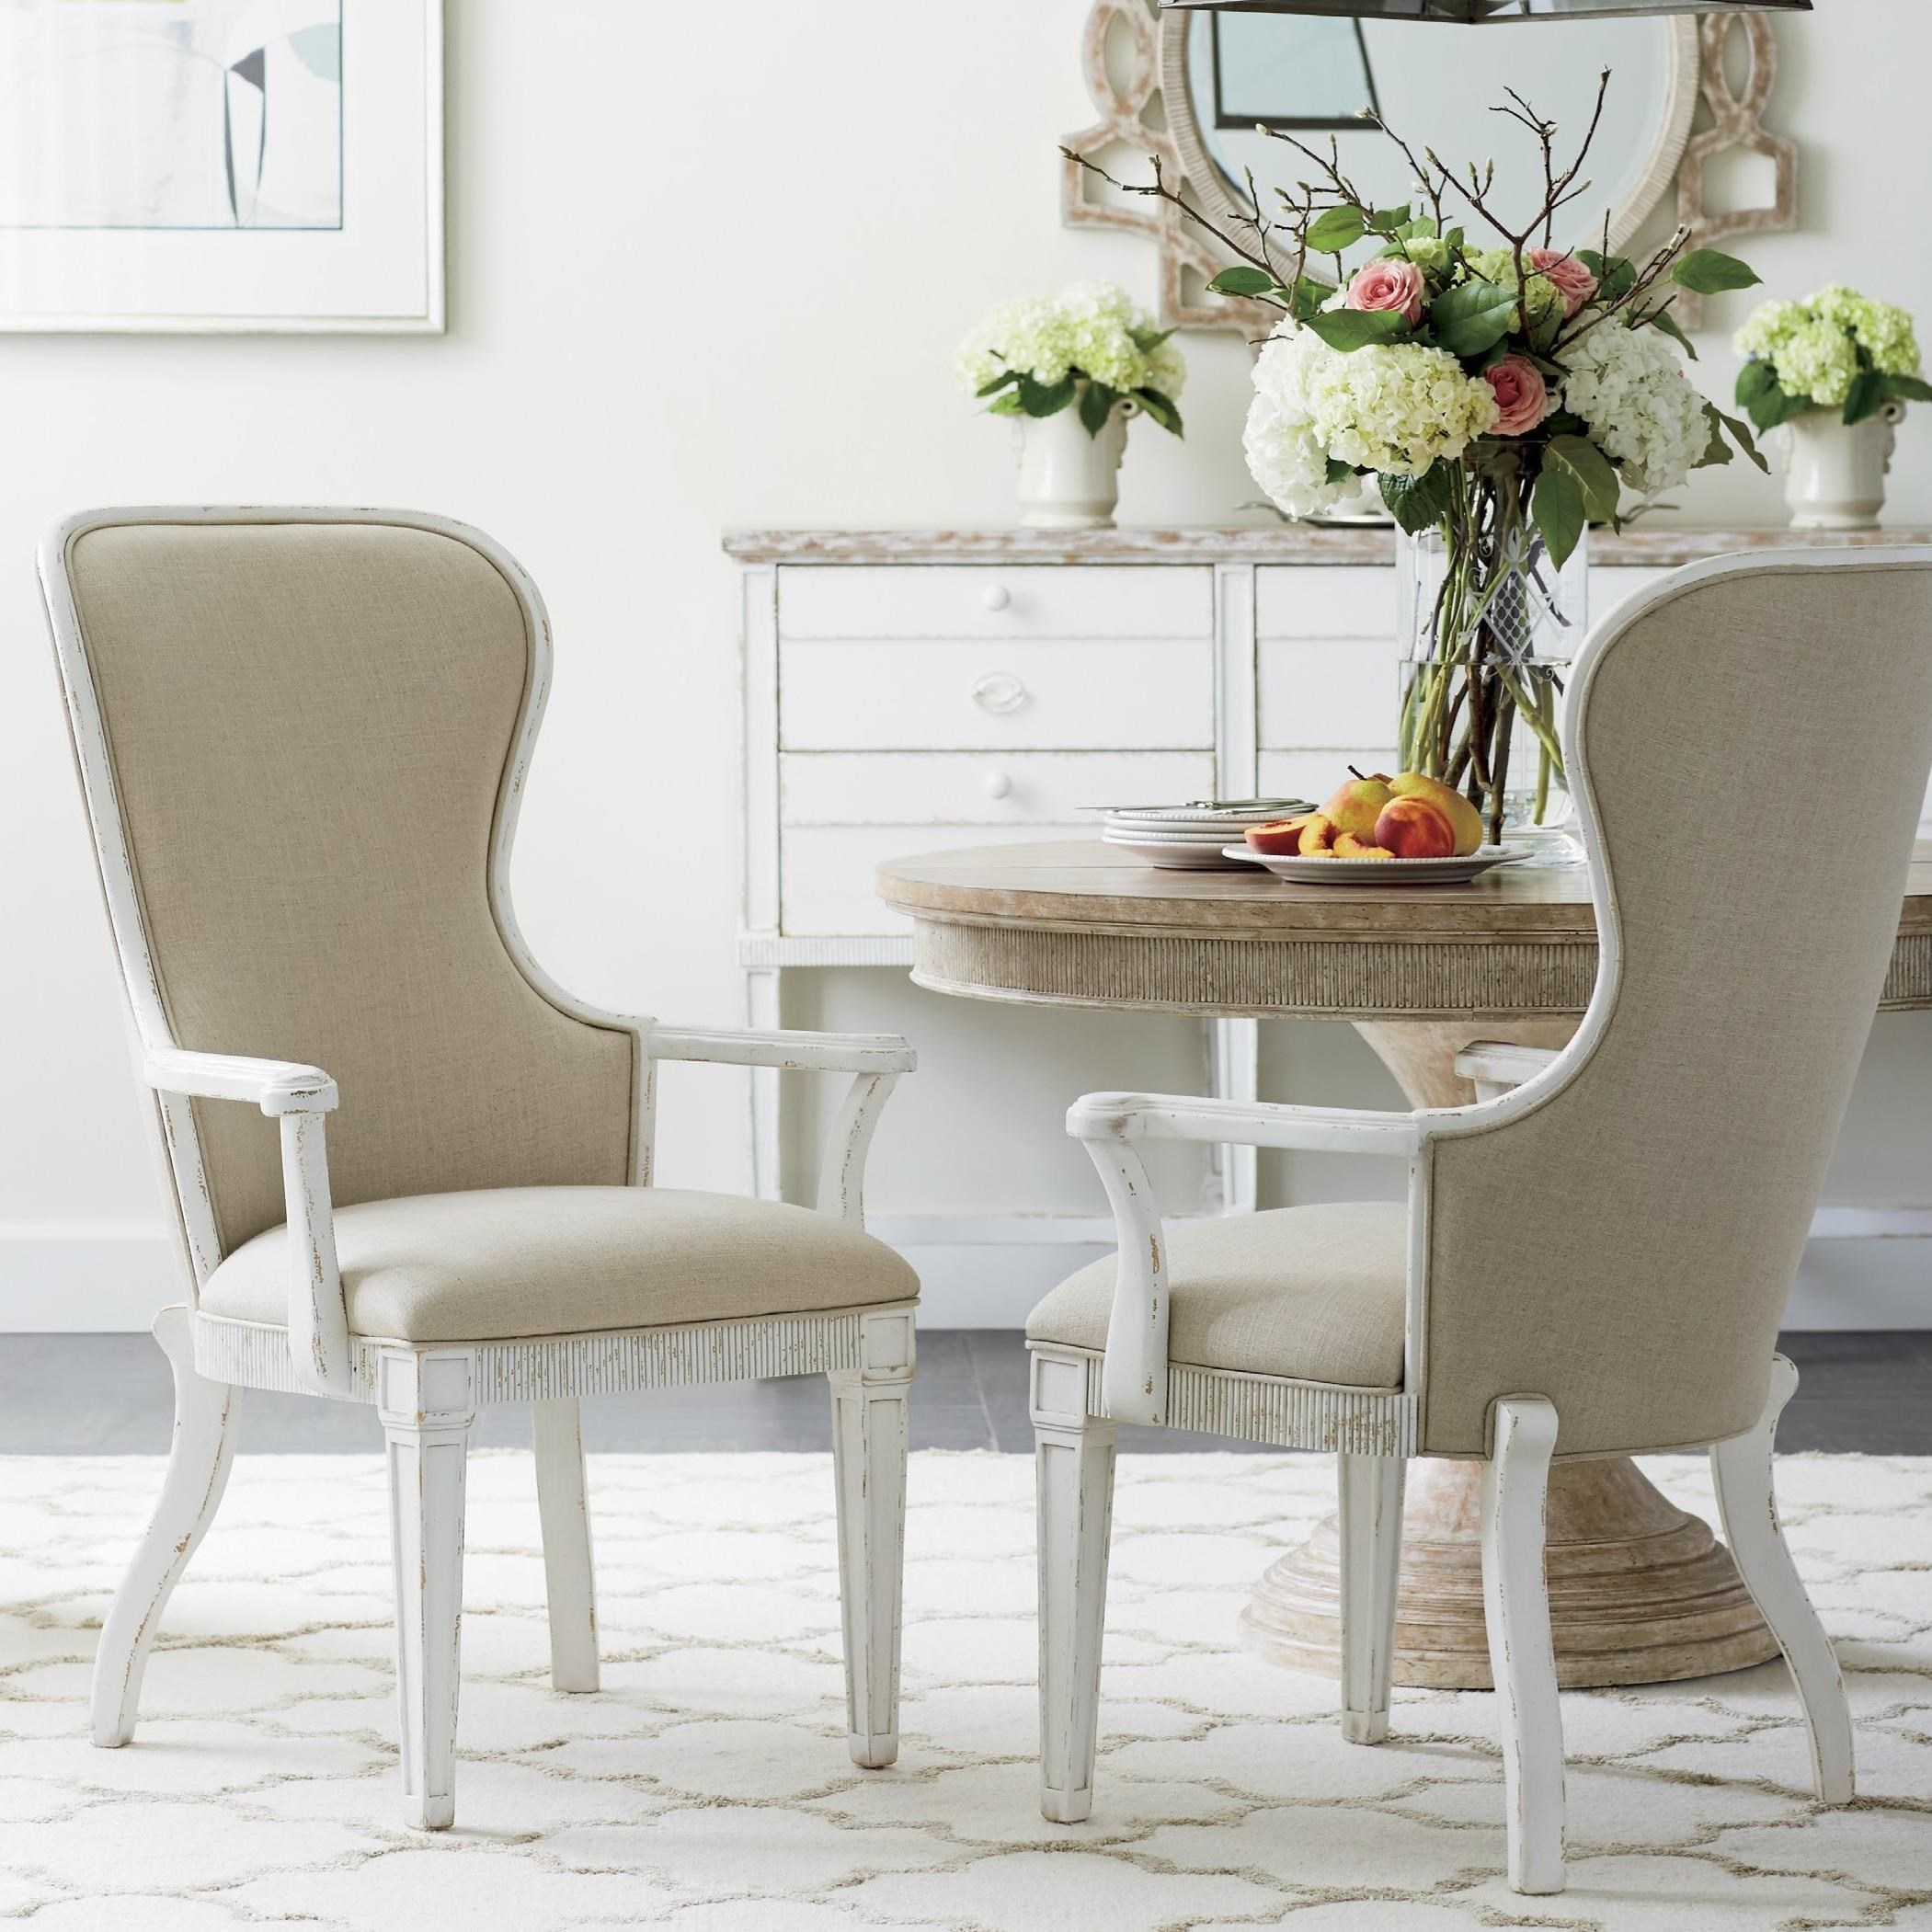 Stanley Furniture Juniper Dell 3-Piece Round Dining Table Set